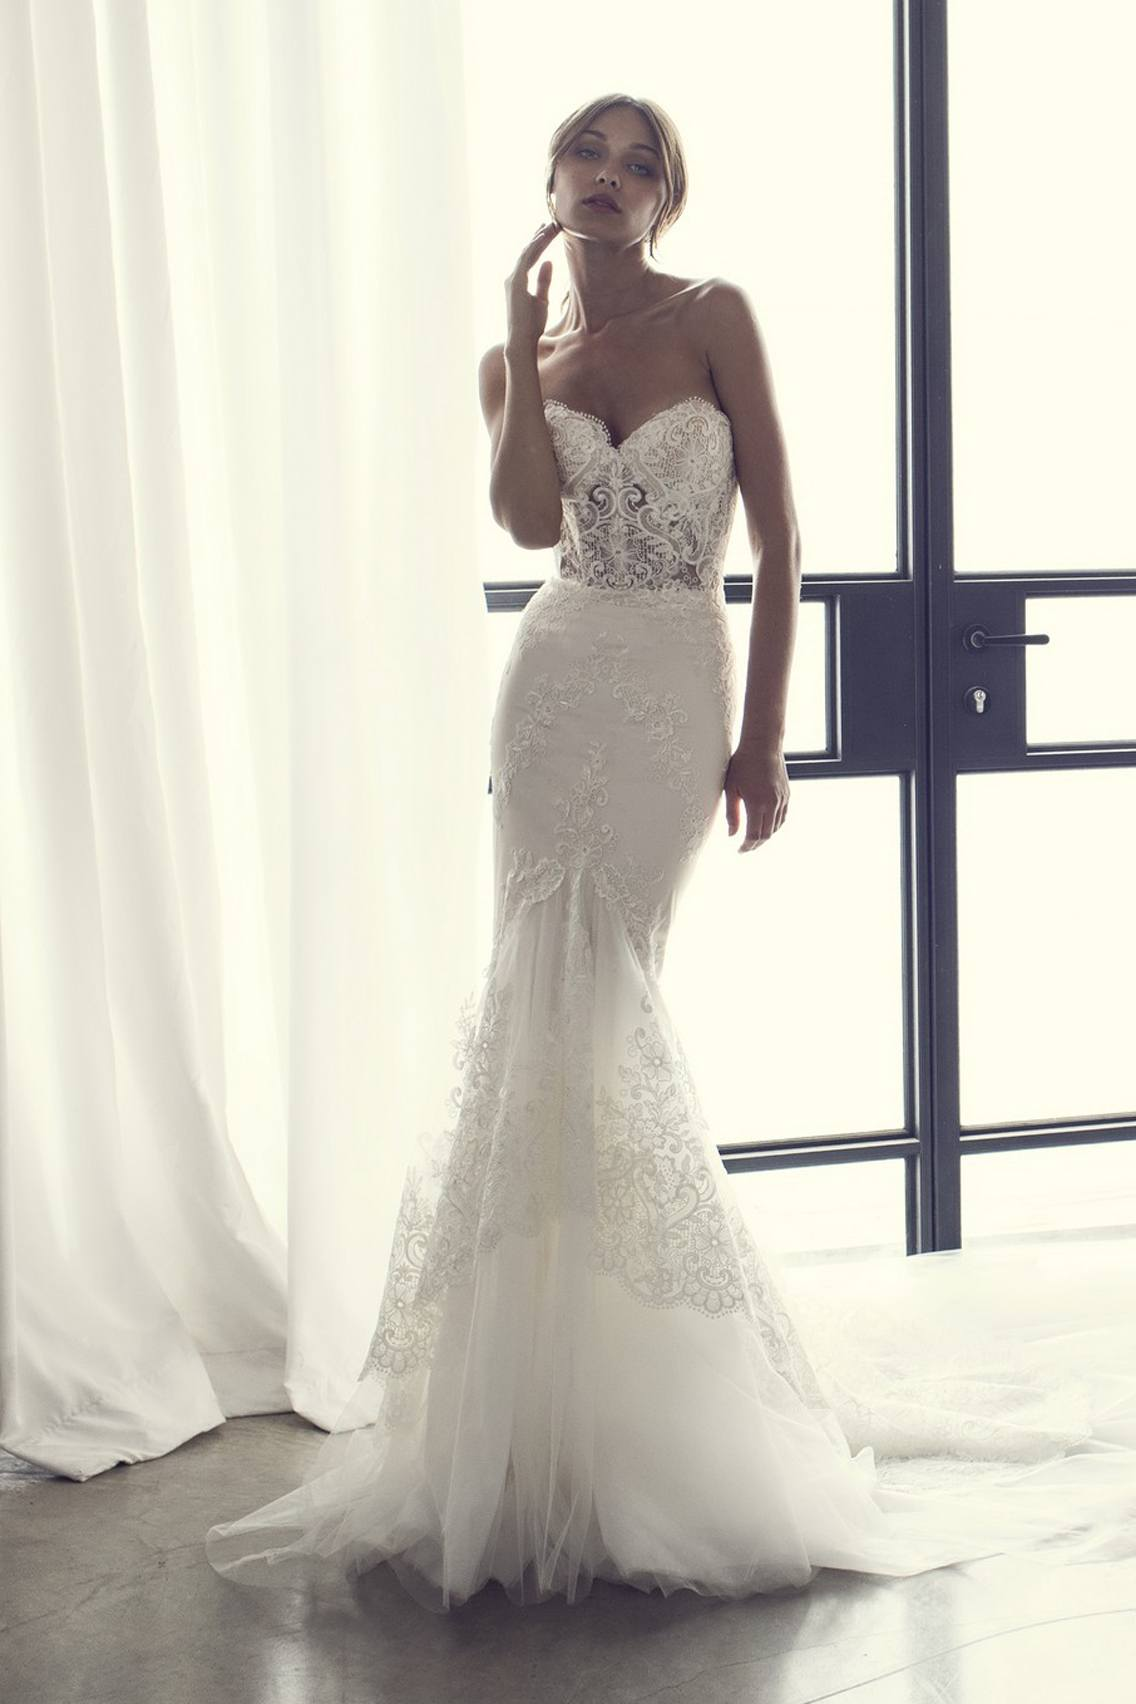 Stylish-Bridal-Outfit-Ideas-For-Women